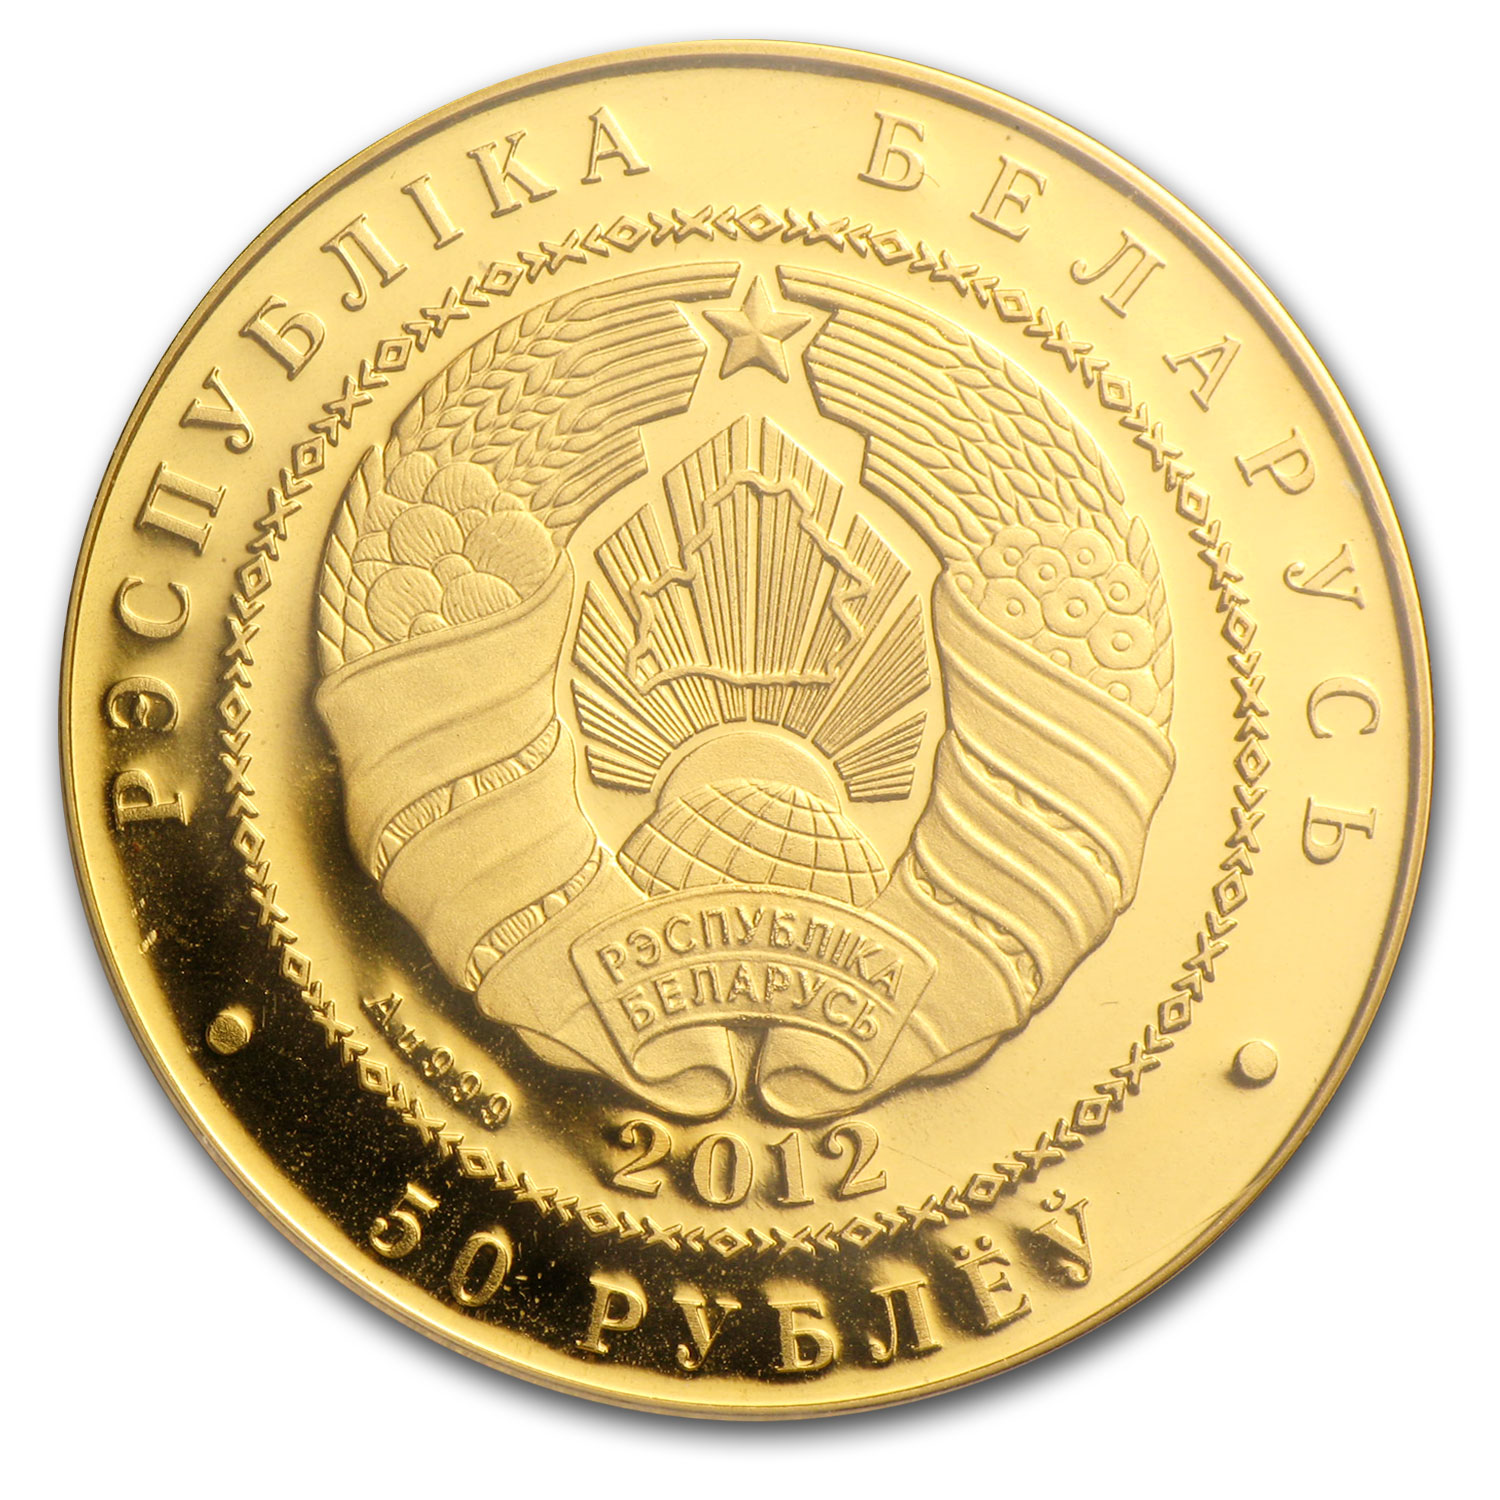 2012 Belarus Gold 50 Rubles Bison Bonasus Proof